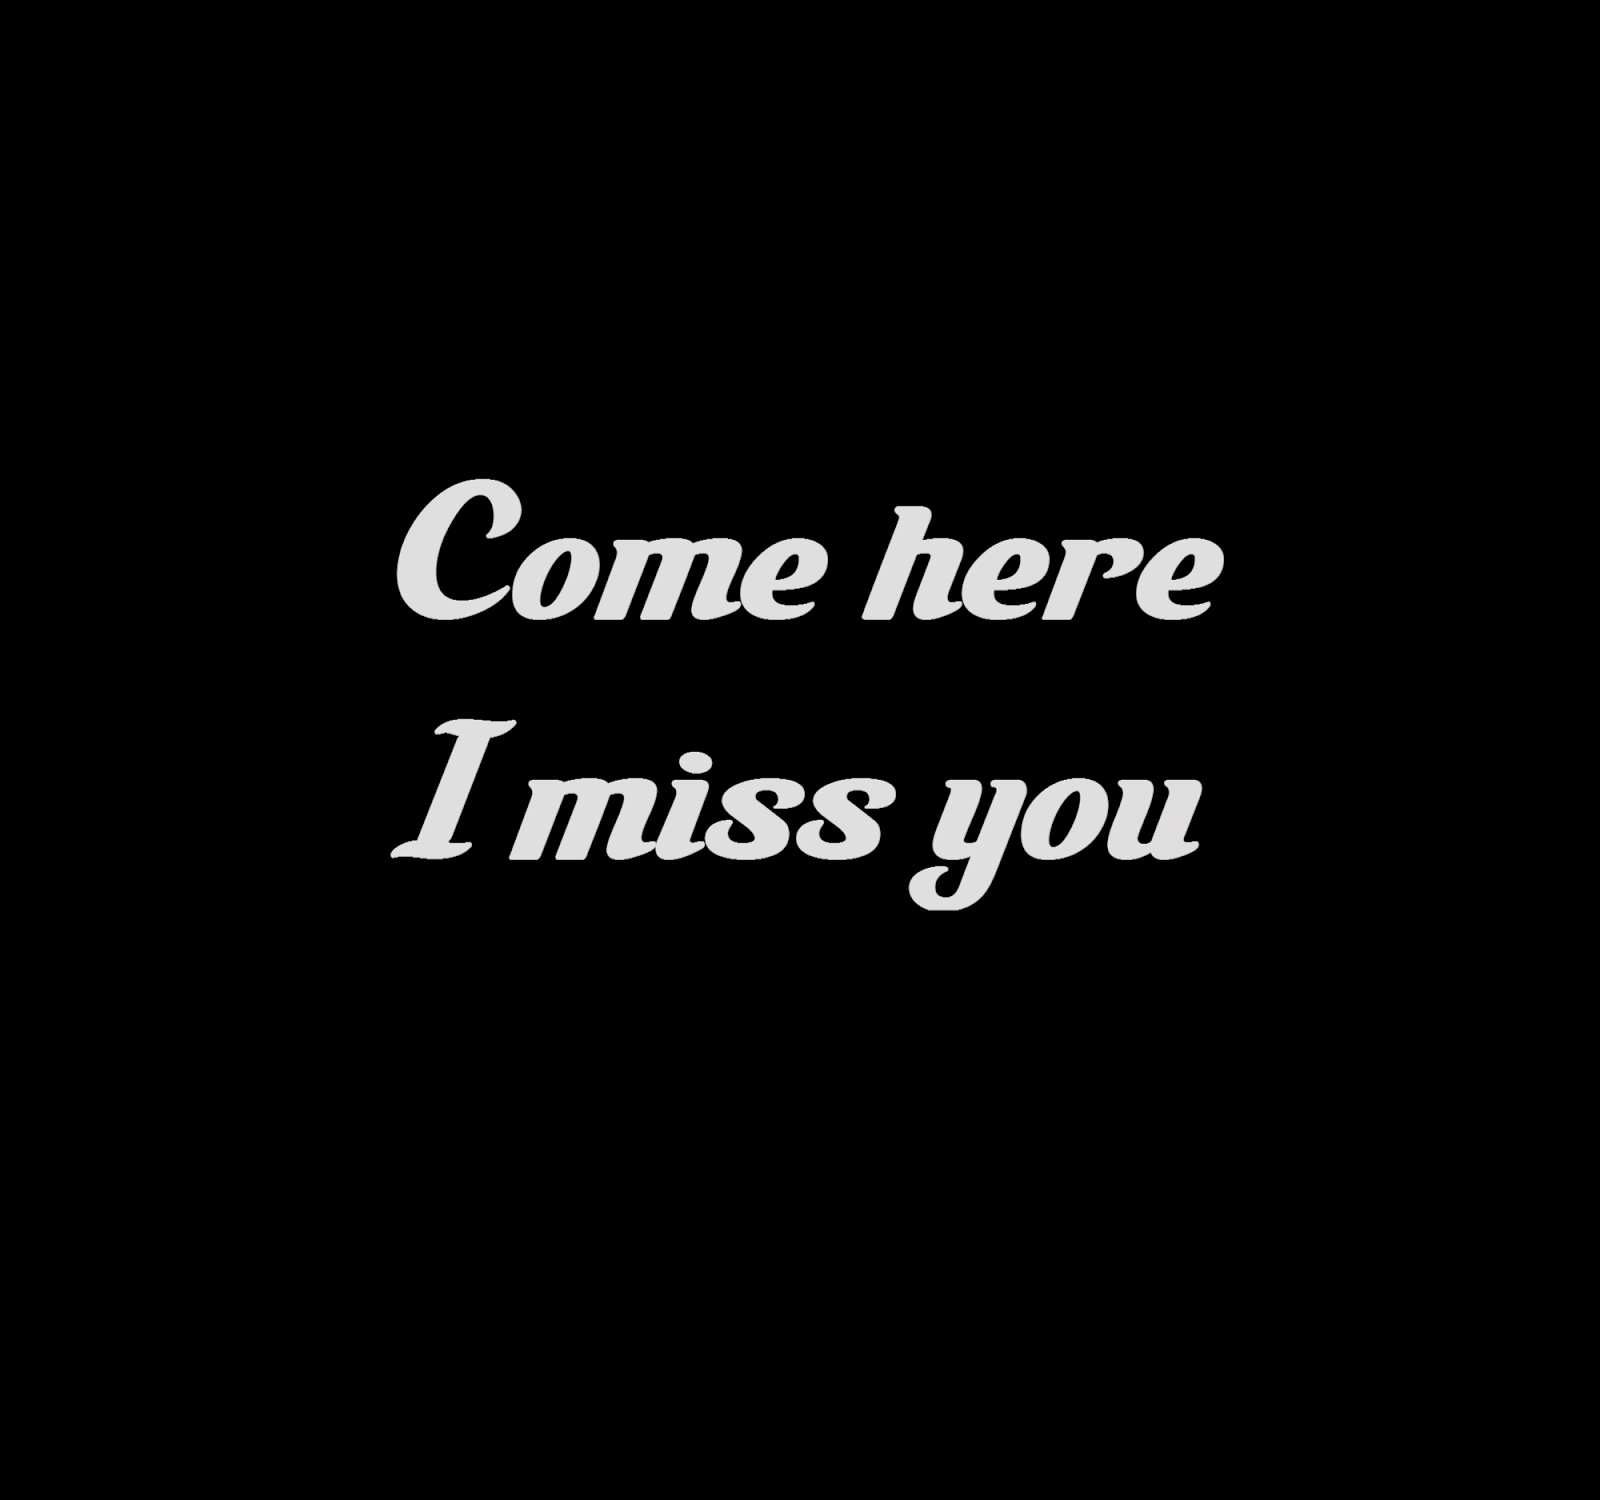 Come here, I miss you